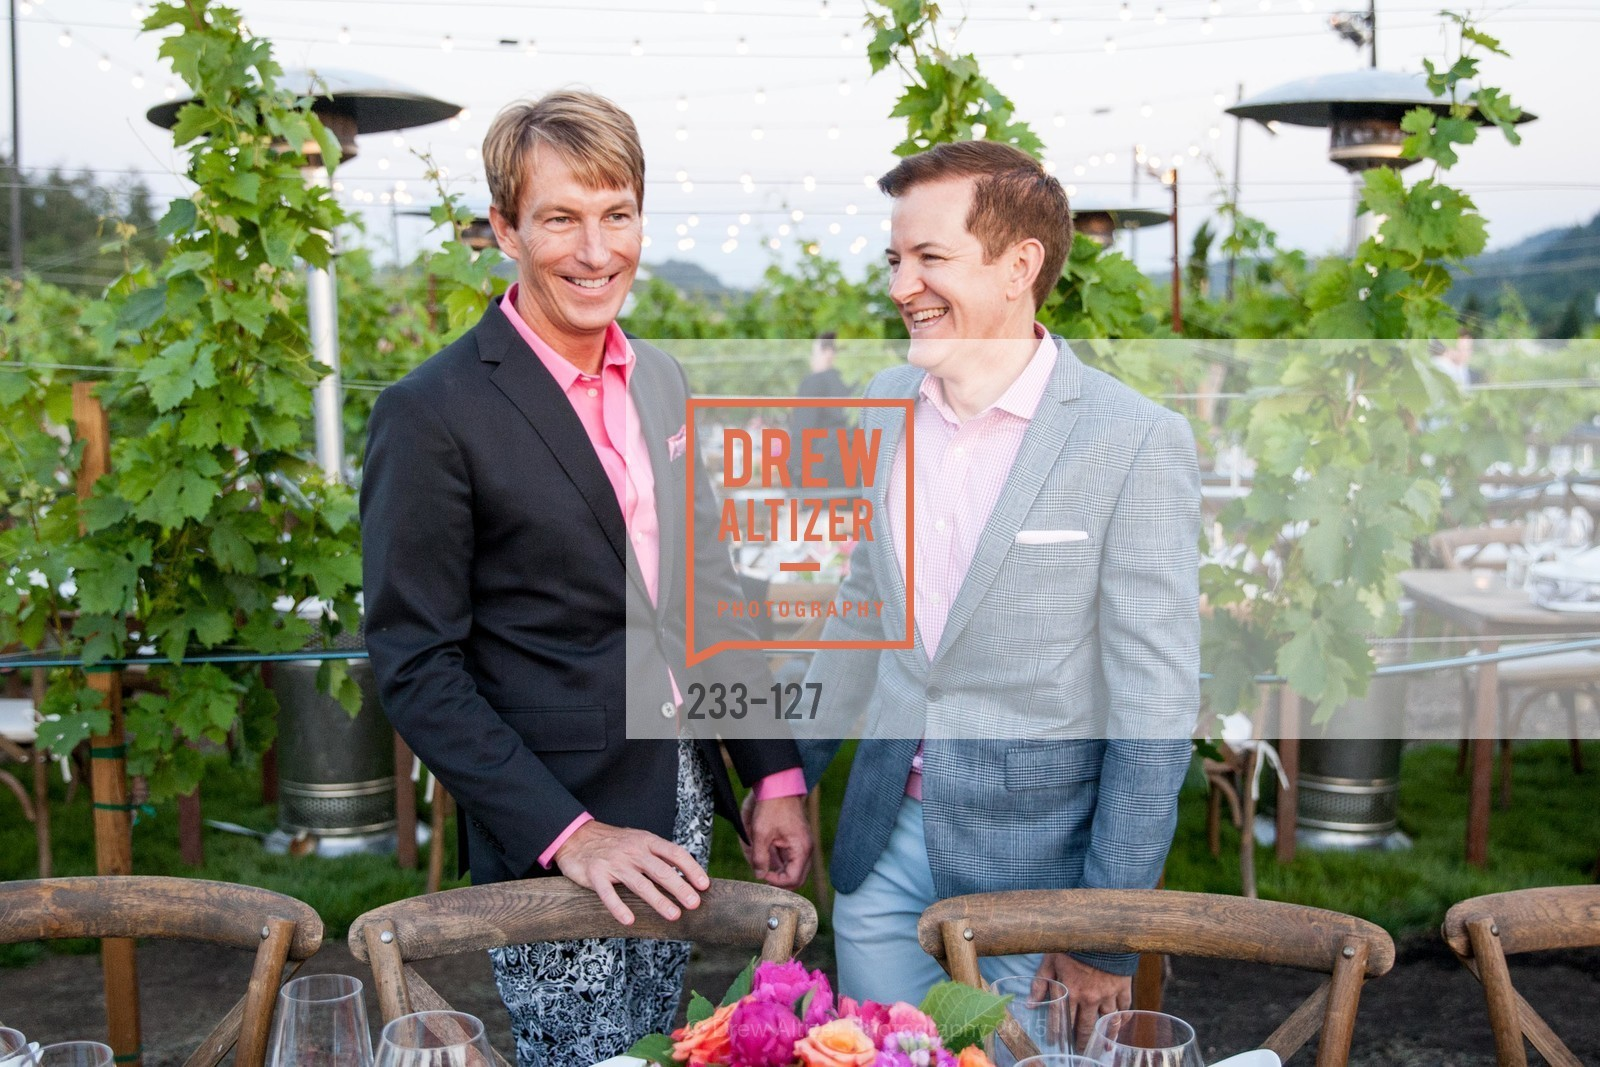 Jack Calhoun, Trent Norris, An Evening in the Vineyard hosted by JACK CALHOUN & TRENT NORRIS, Jack Calhoun & Trent Norris Vineyard. 3393 Dry Creek Road, Healdsburg CA 95448, May 22nd, 2015,Drew Altizer, Drew Altizer Photography, full-service agency, private events, San Francisco photographer, photographer california